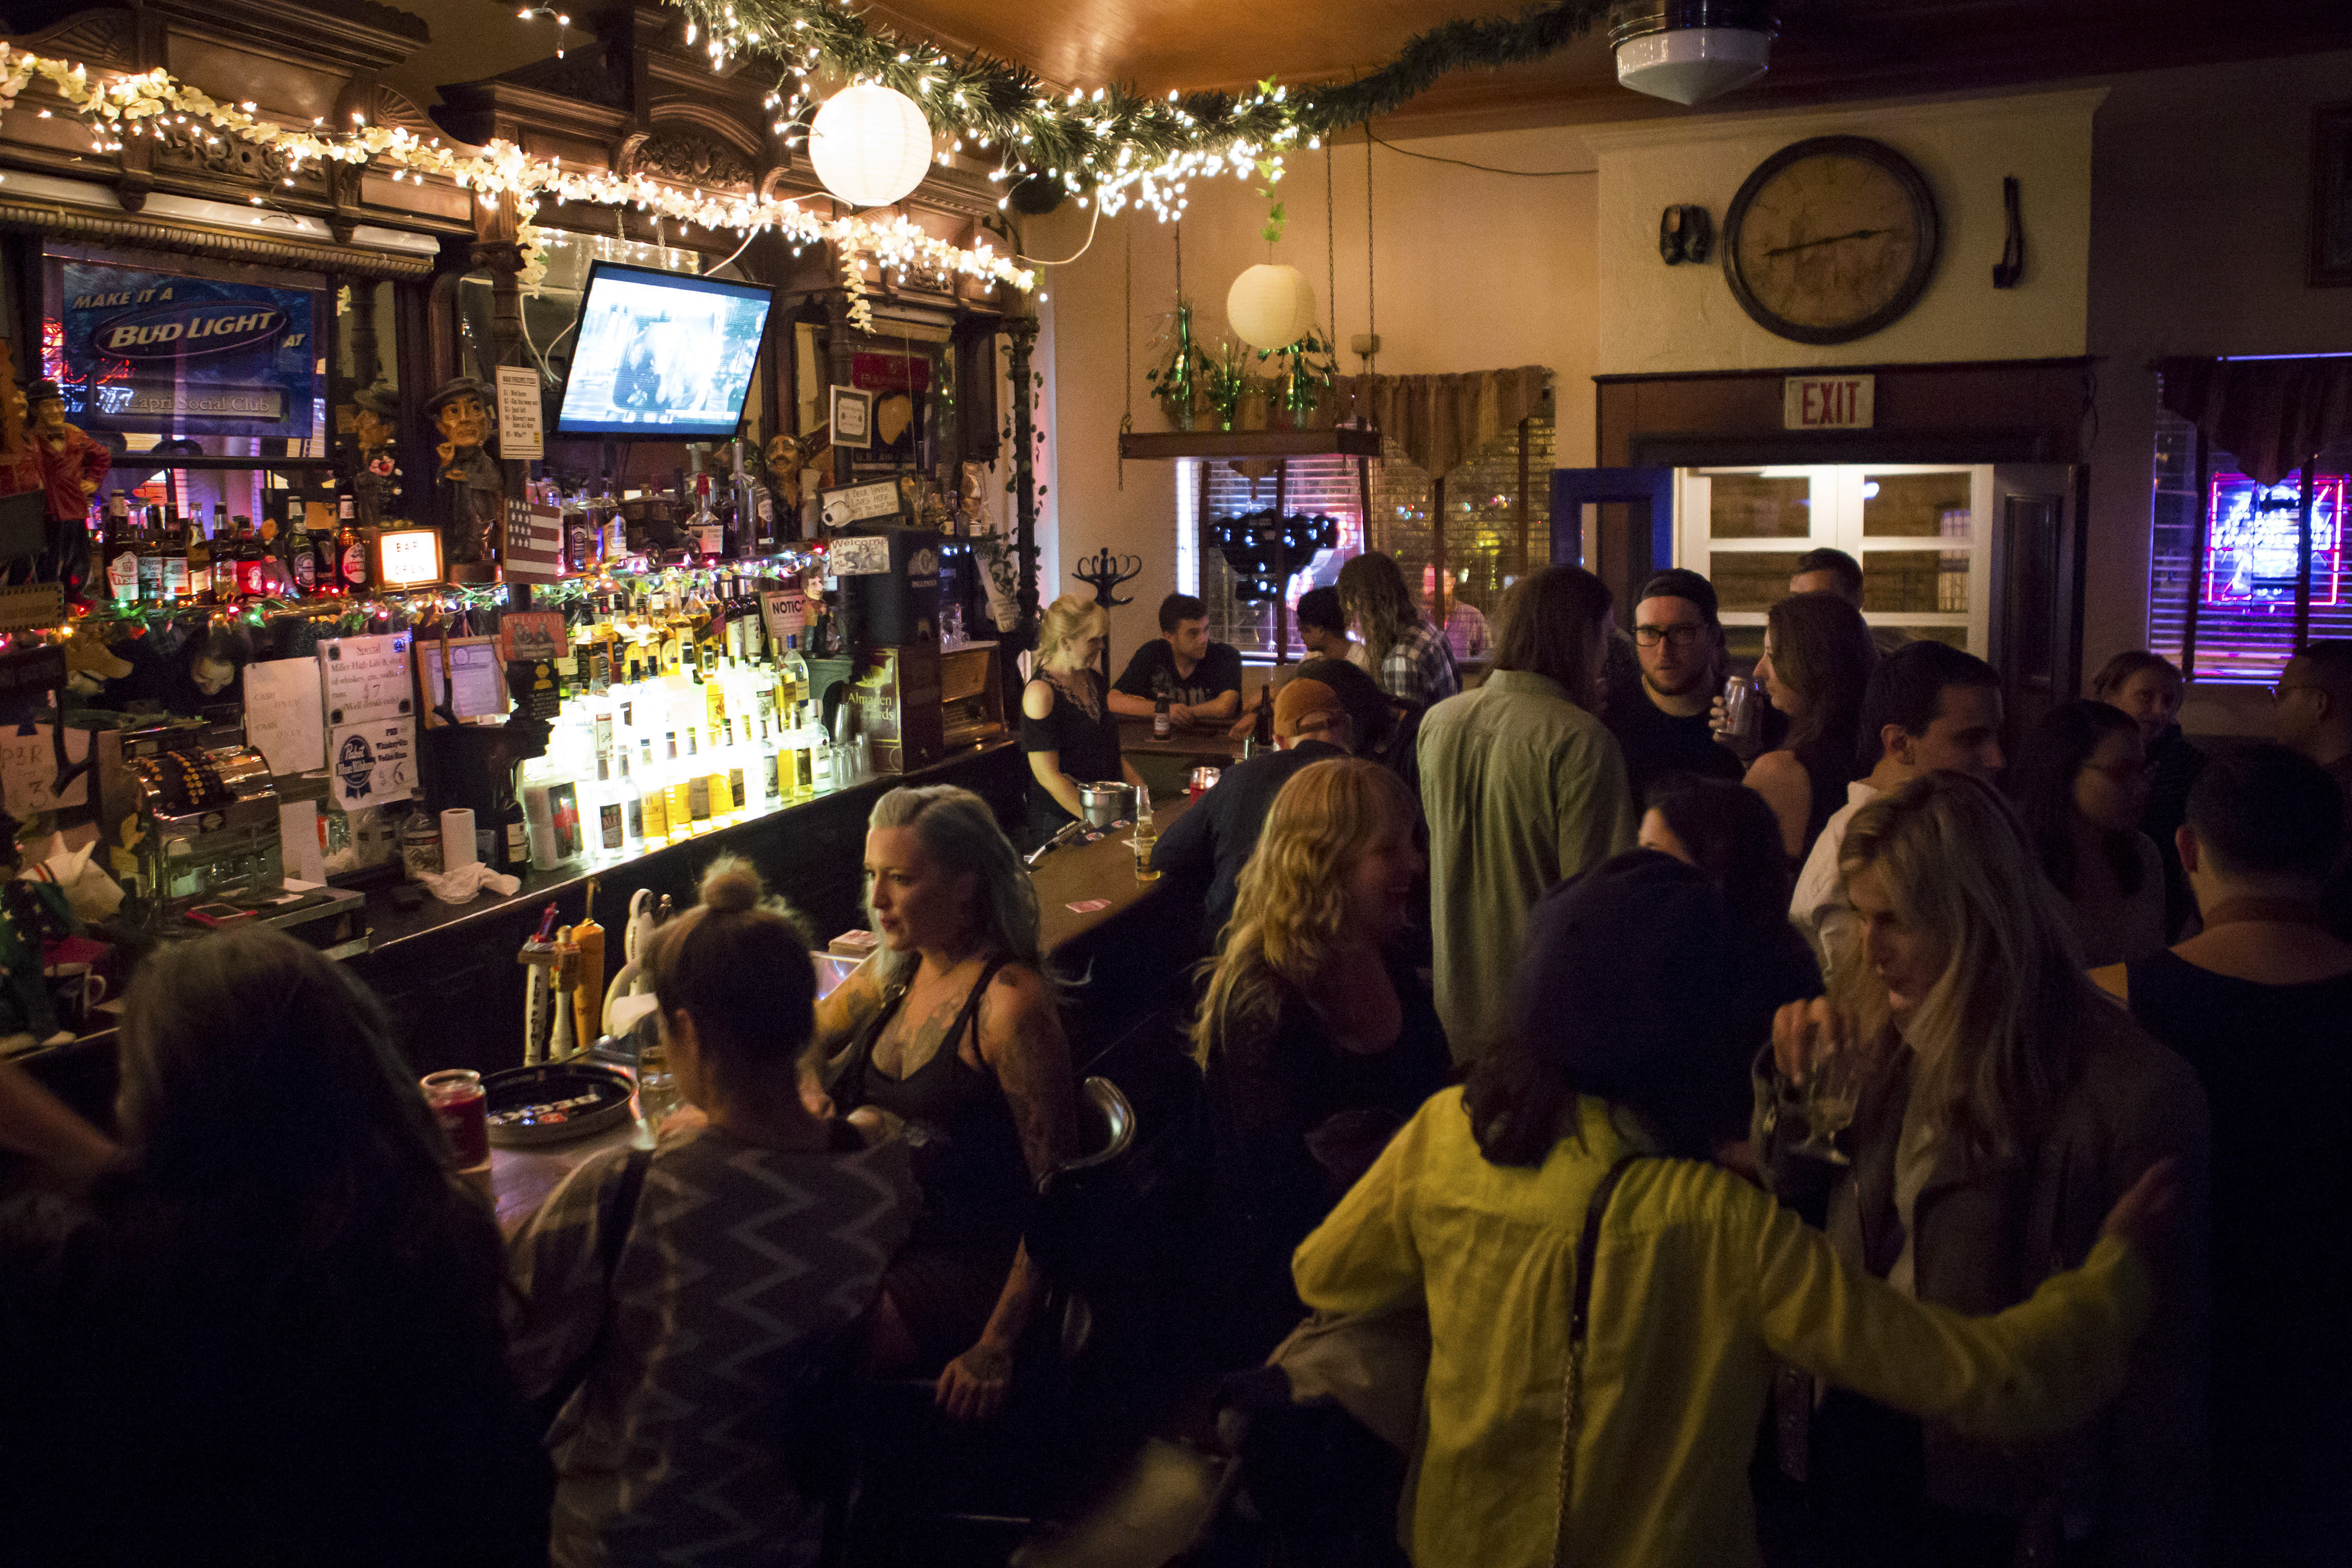 The crowd packs the Capri Social Club in the Greenpoint neighborhood of New York City. The bar's minimalism has made it appealing to television and film production crews.